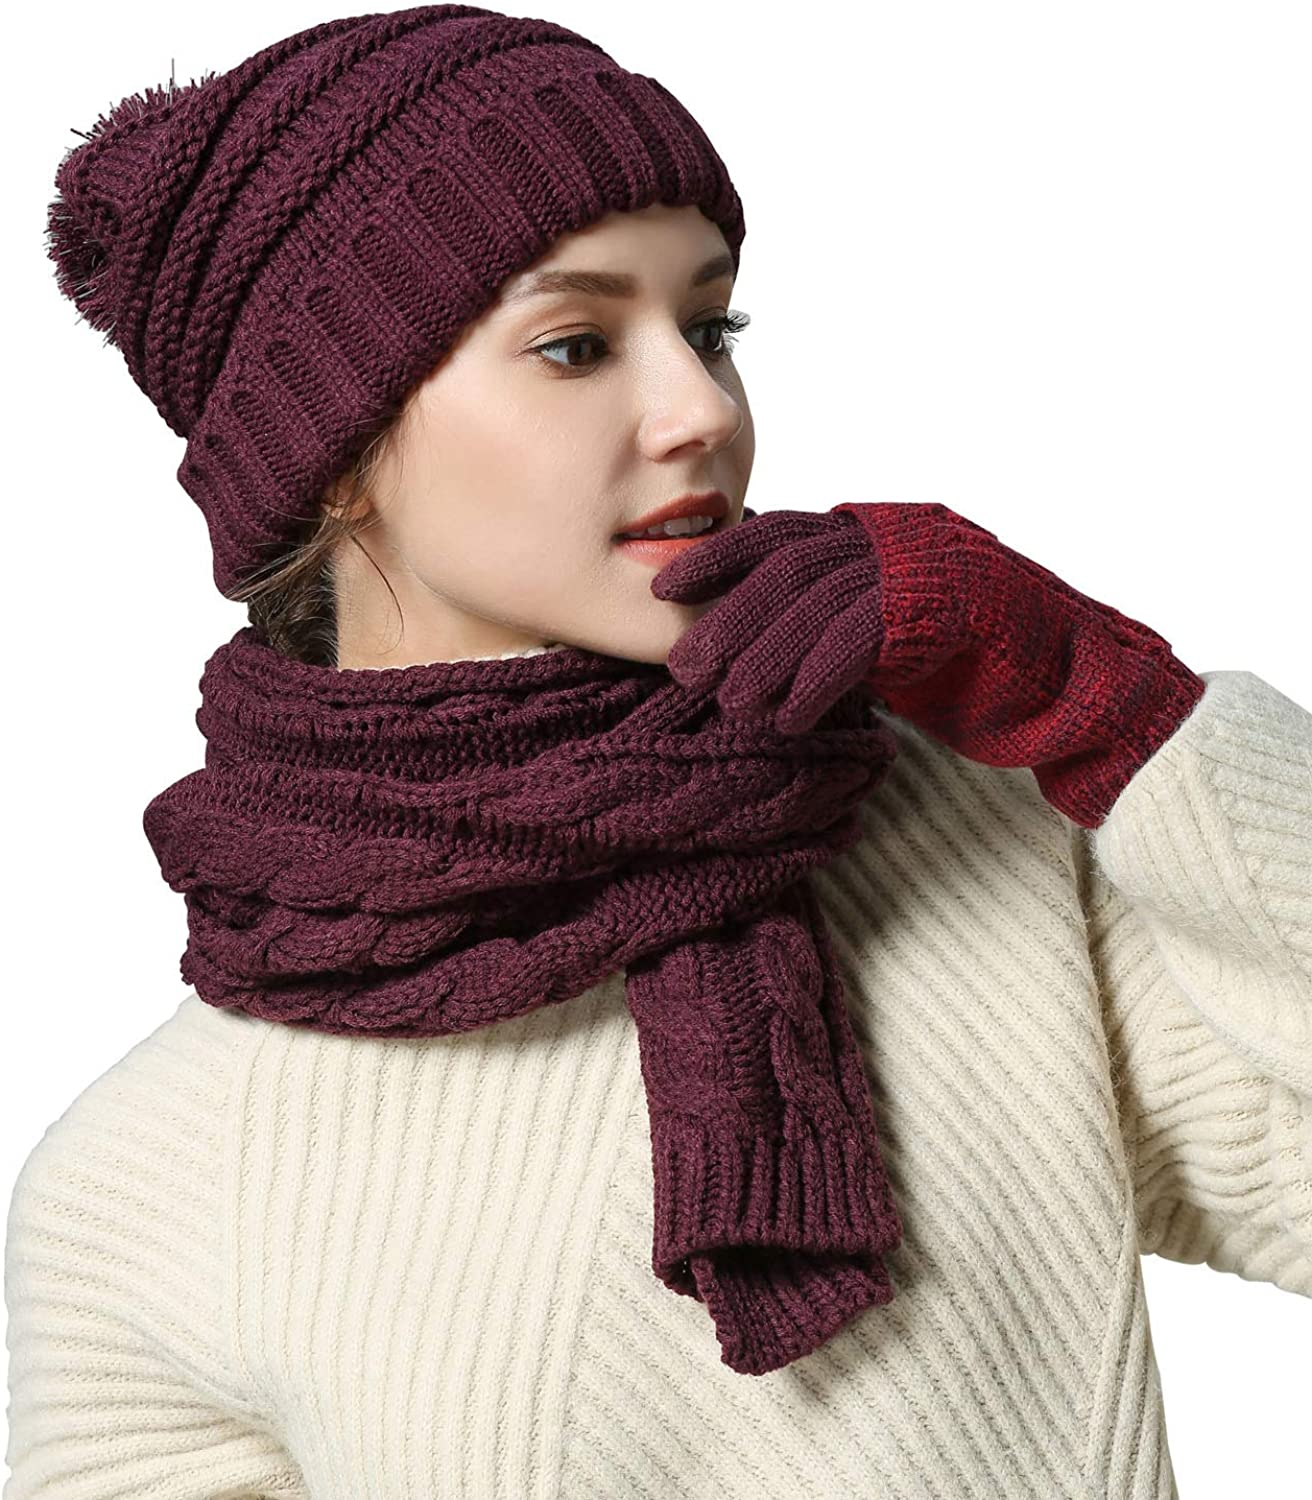 Women Scarf Gloves Hat Set, Pom Beanie Touch Screen Gloves Long Scarf Soft Warm Thick Cable Knit 3PCS Cold Weather Winter Set